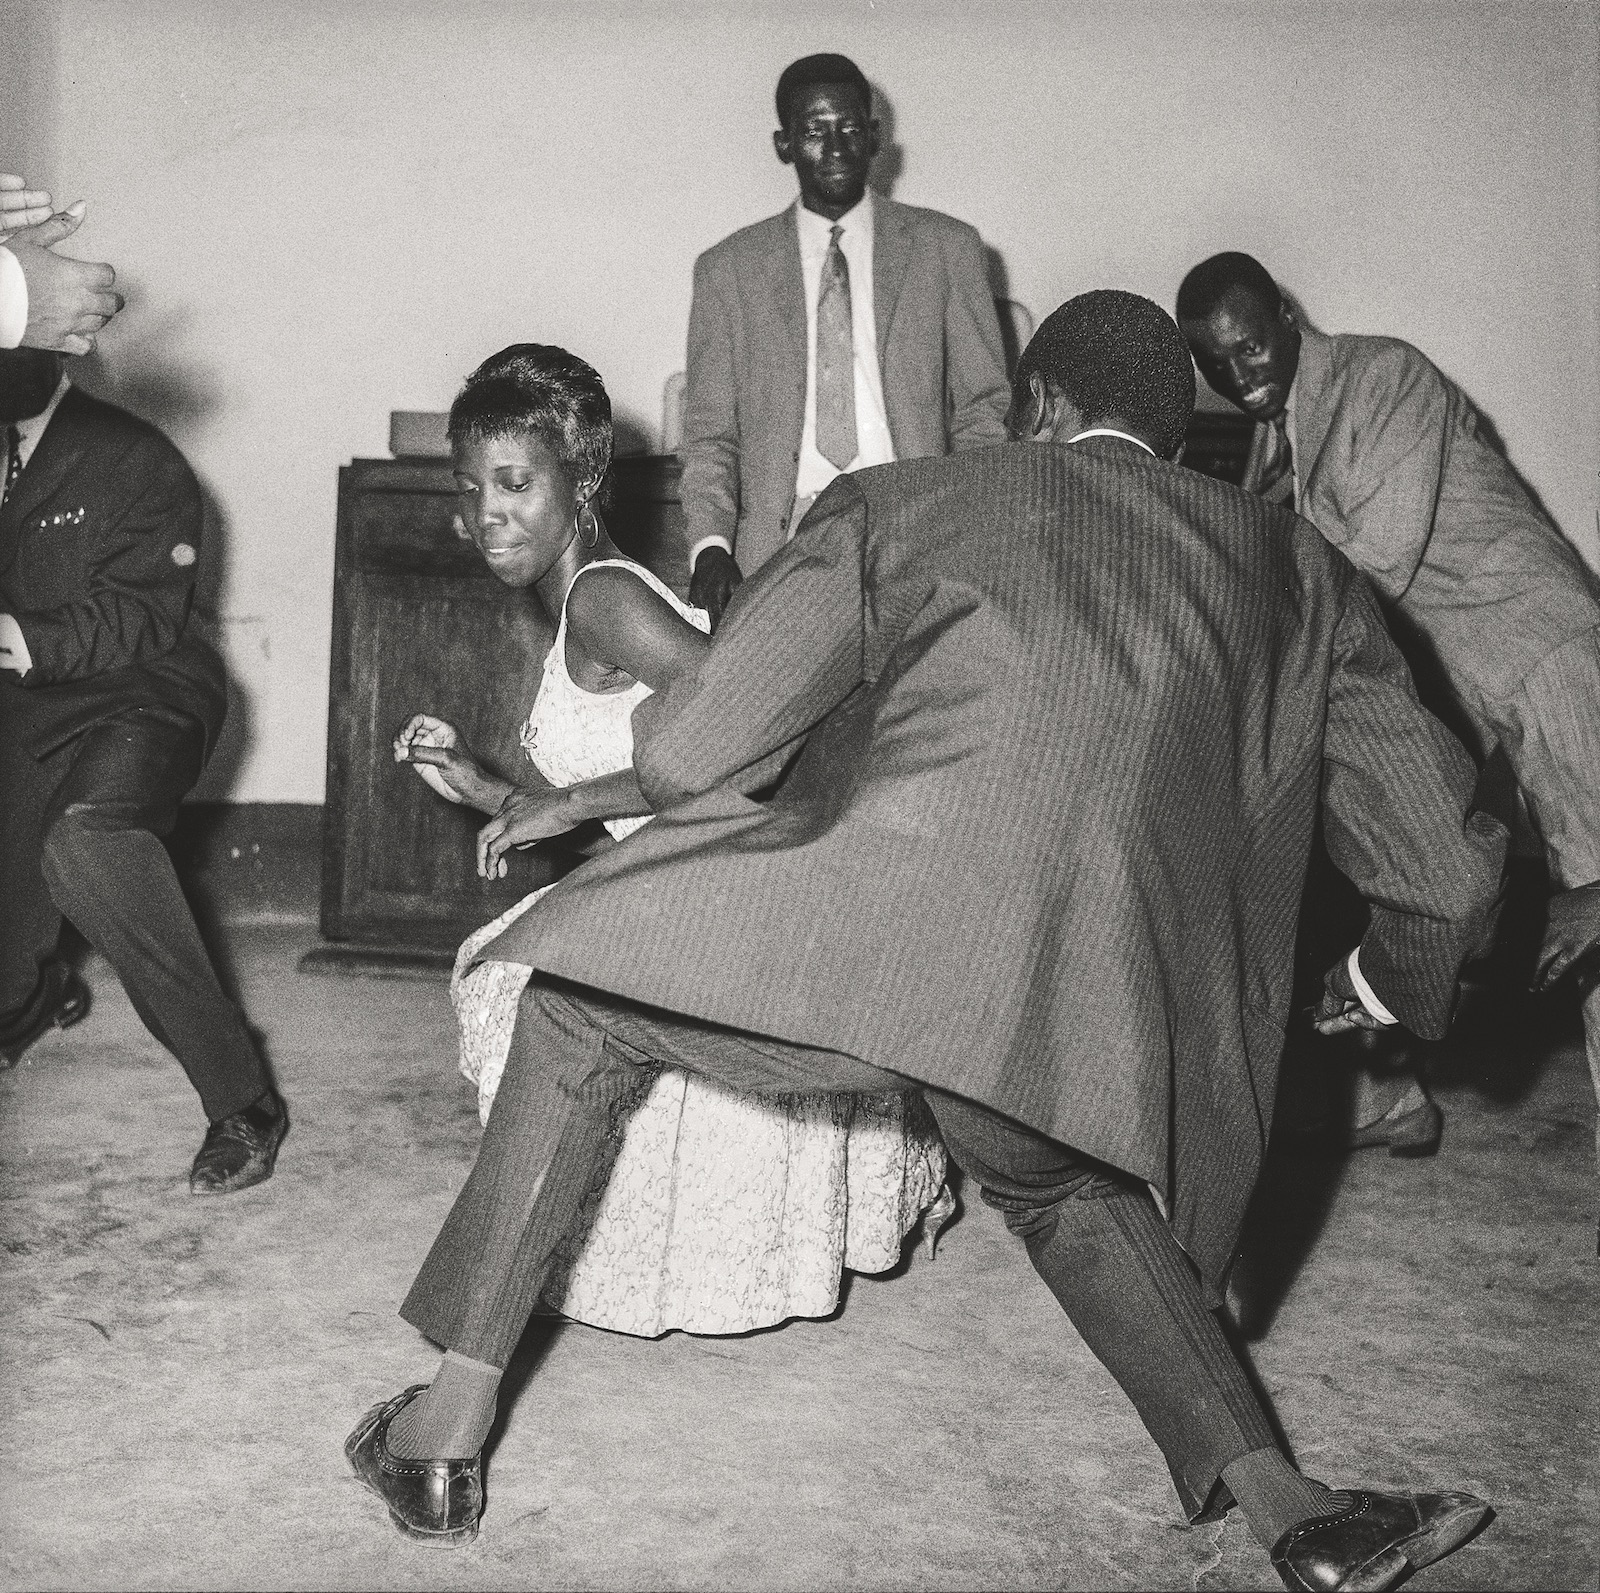 Danser le twist, 1965. Collection Fondation Cartier pour l'art contemporain, Paris © Malick Sidibé Extract from Mali Twist (Éditions Xavier Barral, Fondation Cartier pour l'art contemporain, 2017)